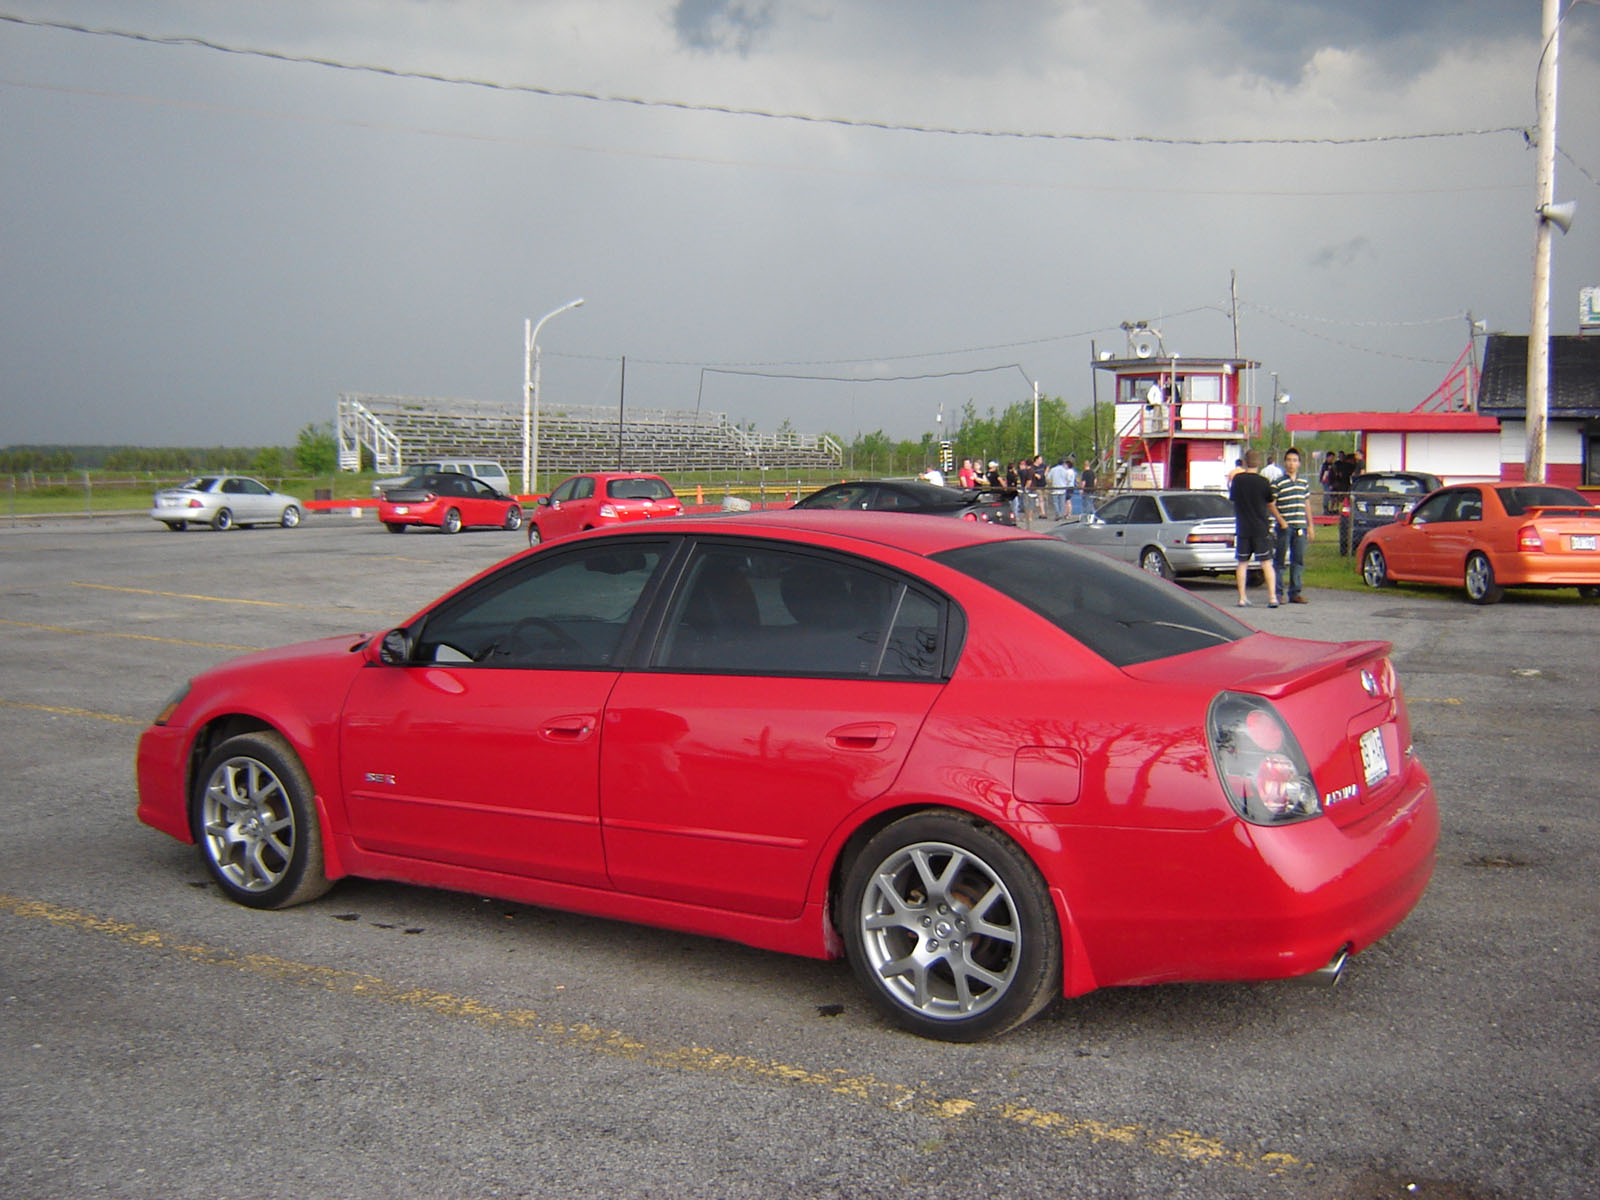 2005 nissan altima ser pictures, mods, upgrades, wallpaper